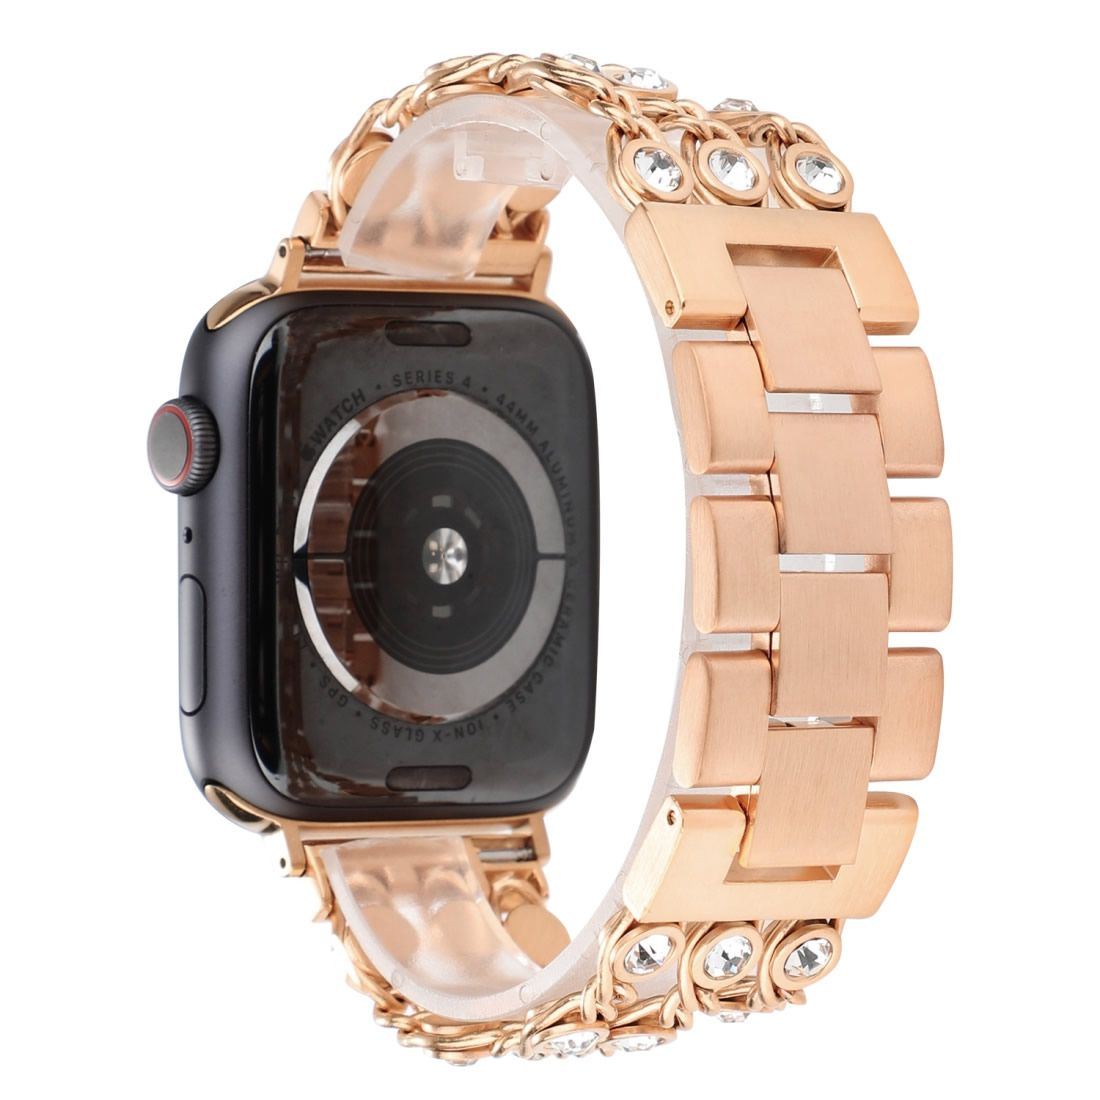 Pulseira Luxury Euforia compatível com Apple Watch 40mm e 38mm (ROSA GOLD)